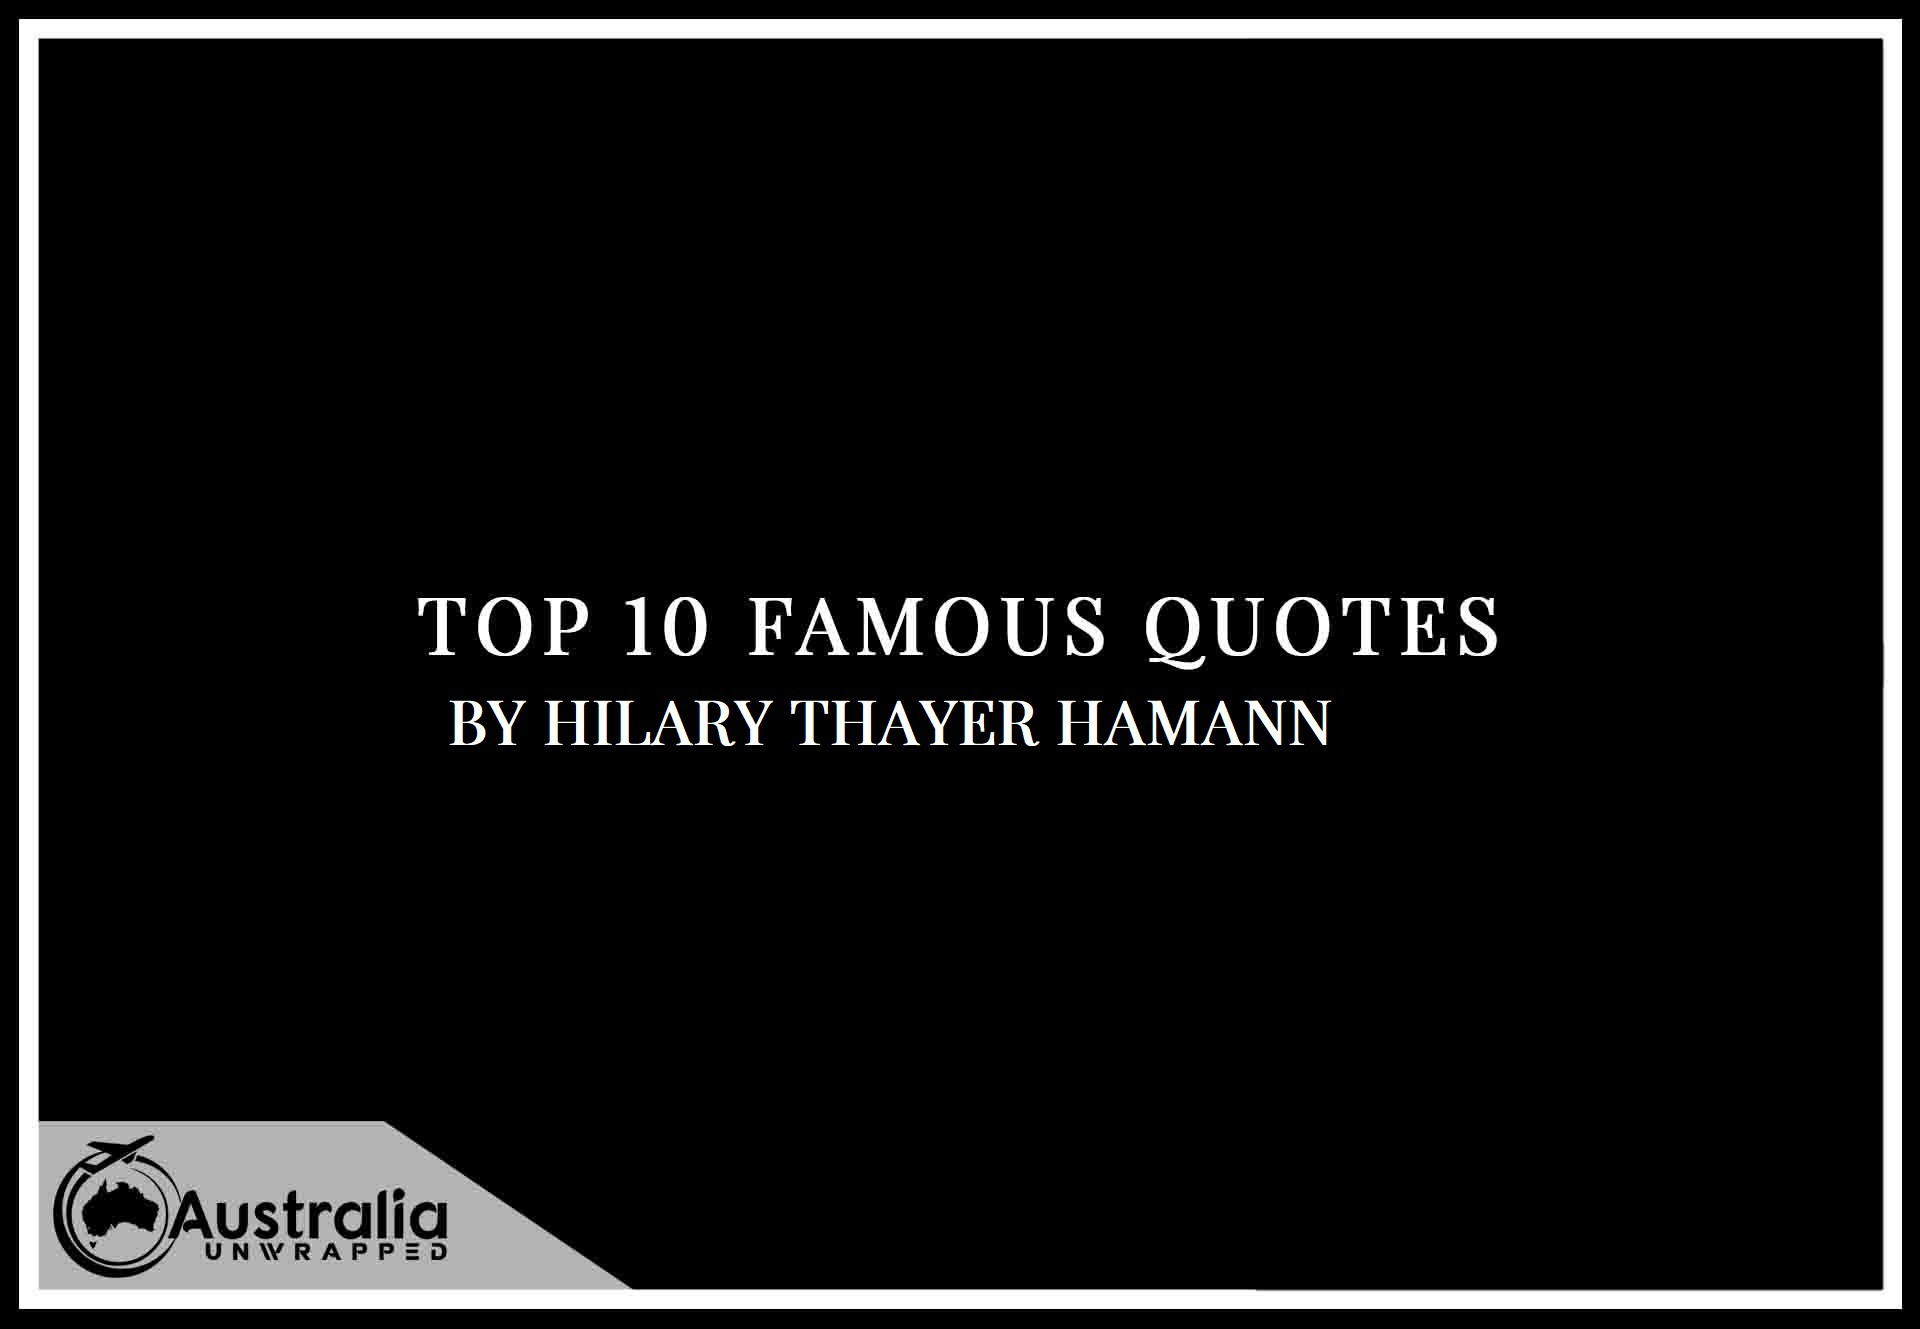 Top 10 Famous Quotes by Author Hilary Thayer Hamann